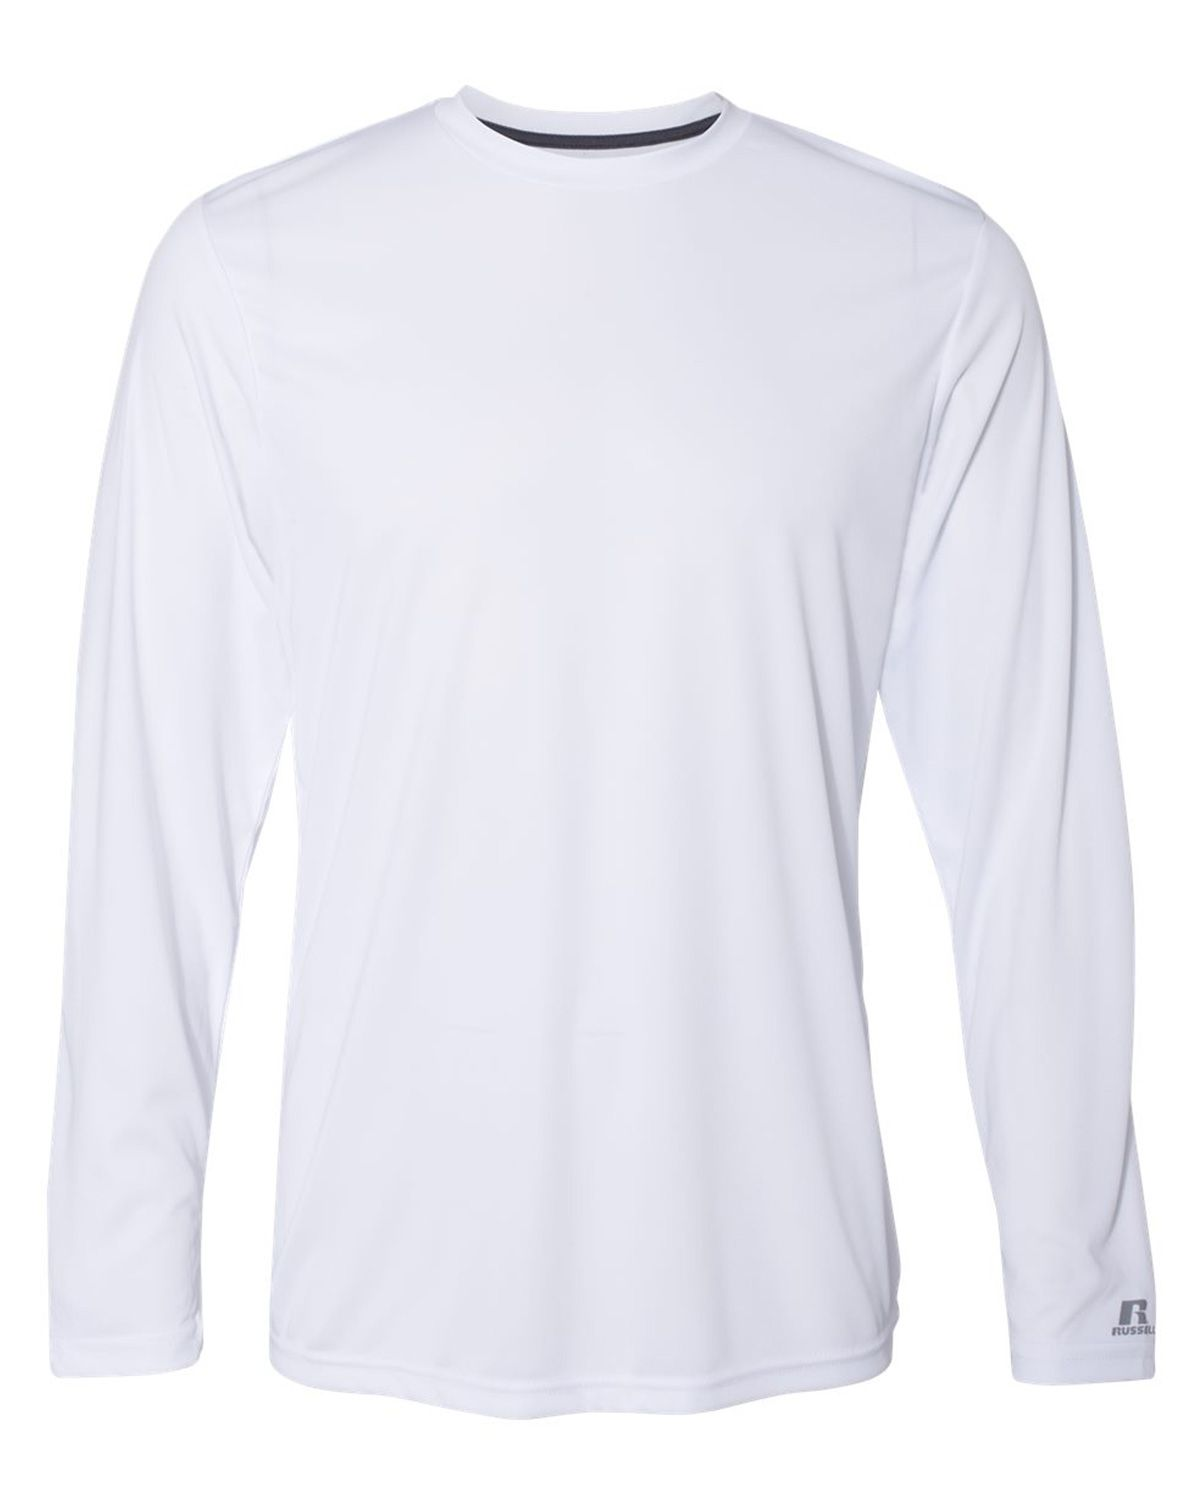 bdee02f1 Russell Athletic 631X2M Mens Core Long Sleeve Performance Tee